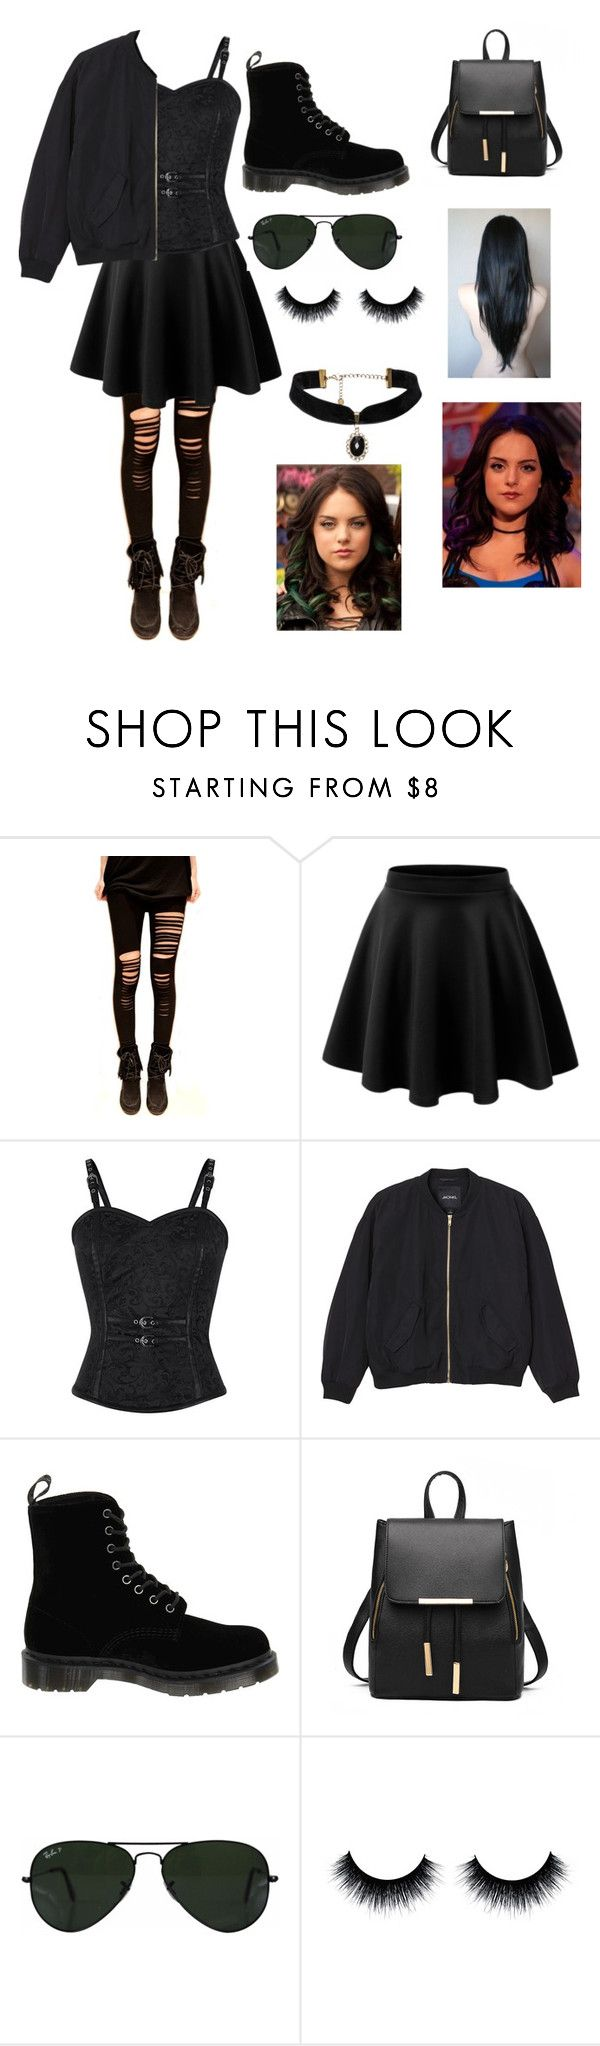 """Get The Look: Victorious Jade West"" by jumpingjb ❤ liked on Polyvore featuring Monki, Dr. Martens and Ray-Ban"